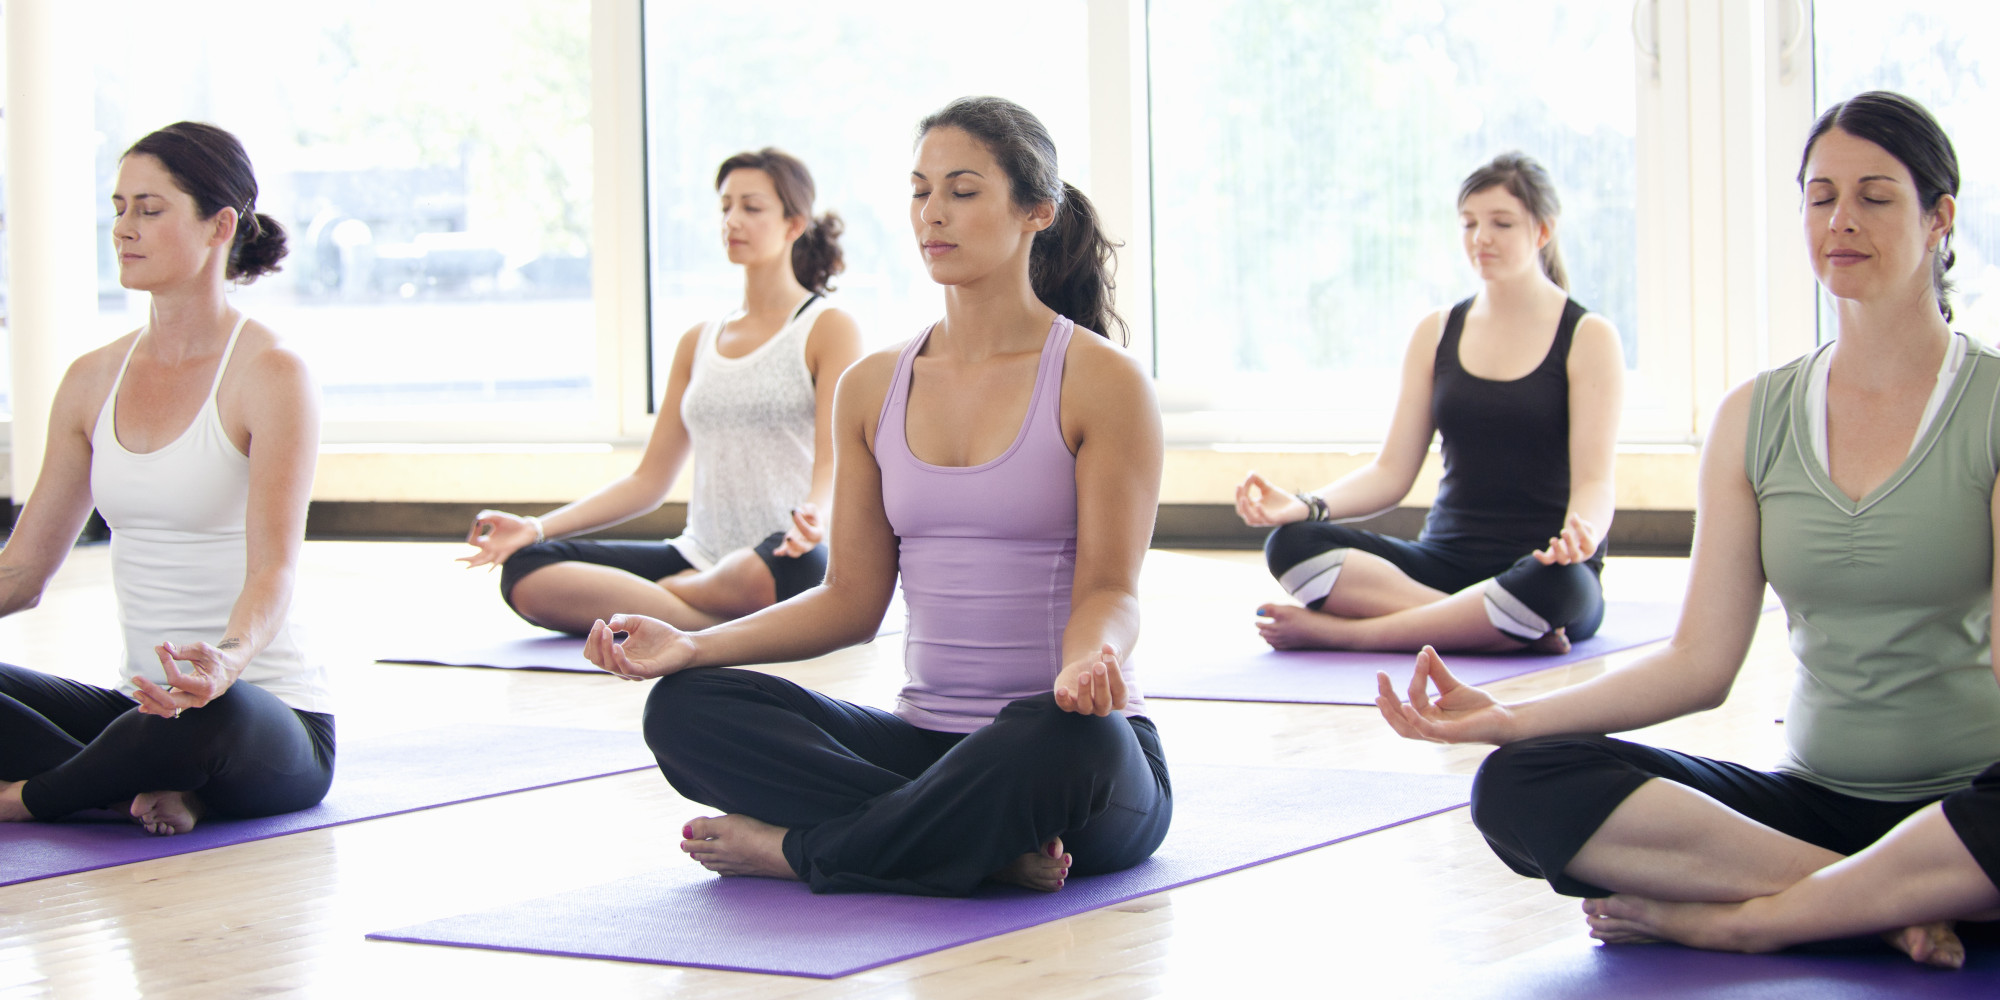 The Real Reason Yoga Is Still Dominated By Women